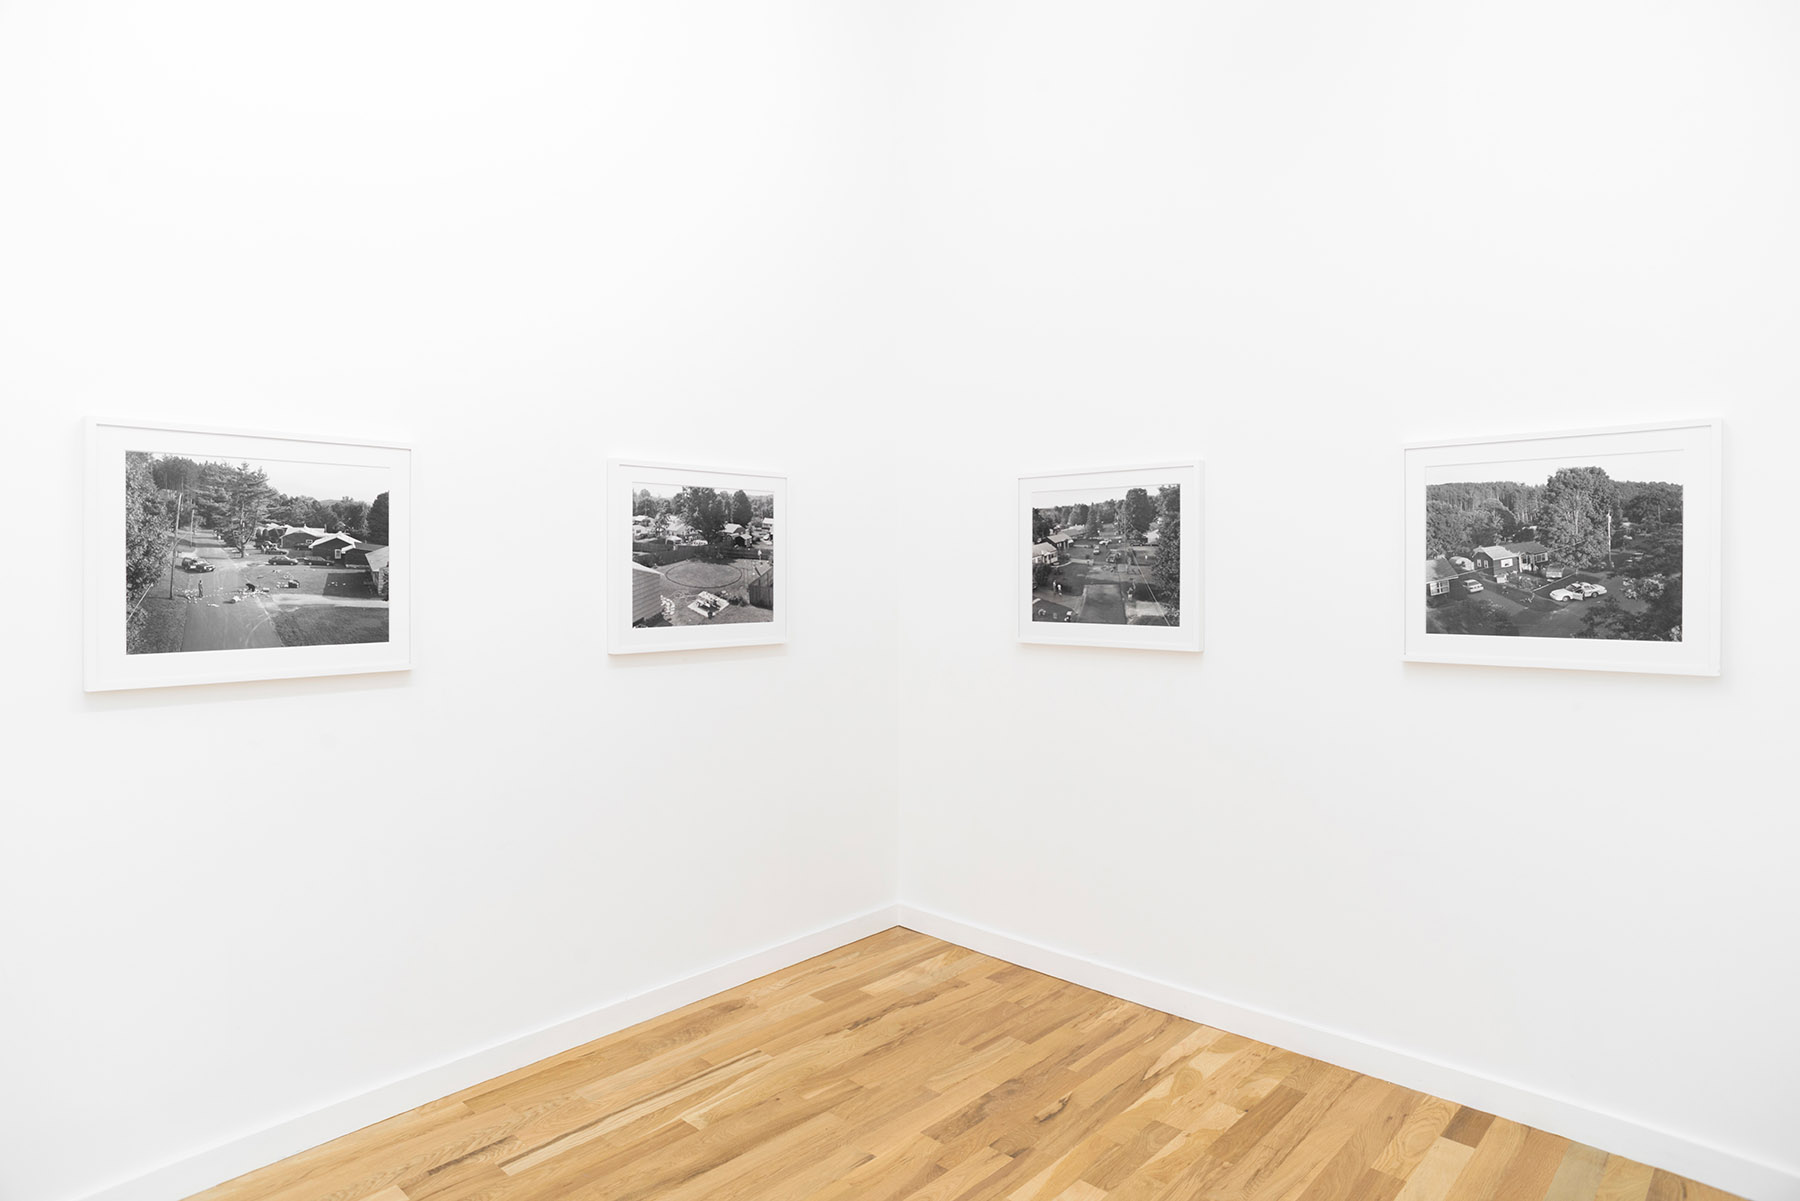 Installation view at DOCUMENT-web